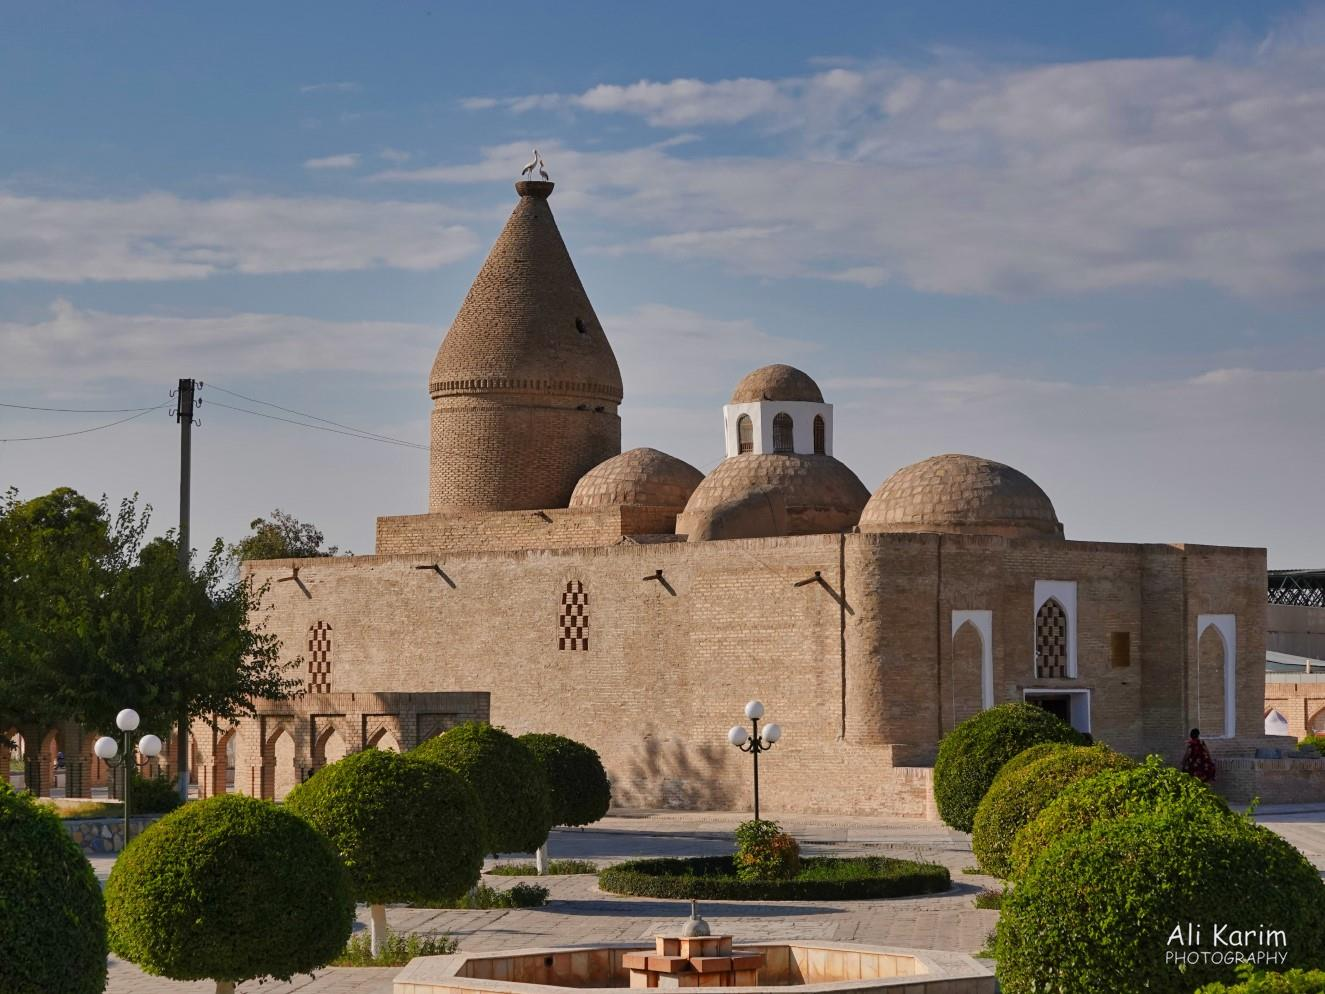 Bukhara, Oct 2019, Interesting mosque near the Citadel; note the nesting birds on the top of the largest dome